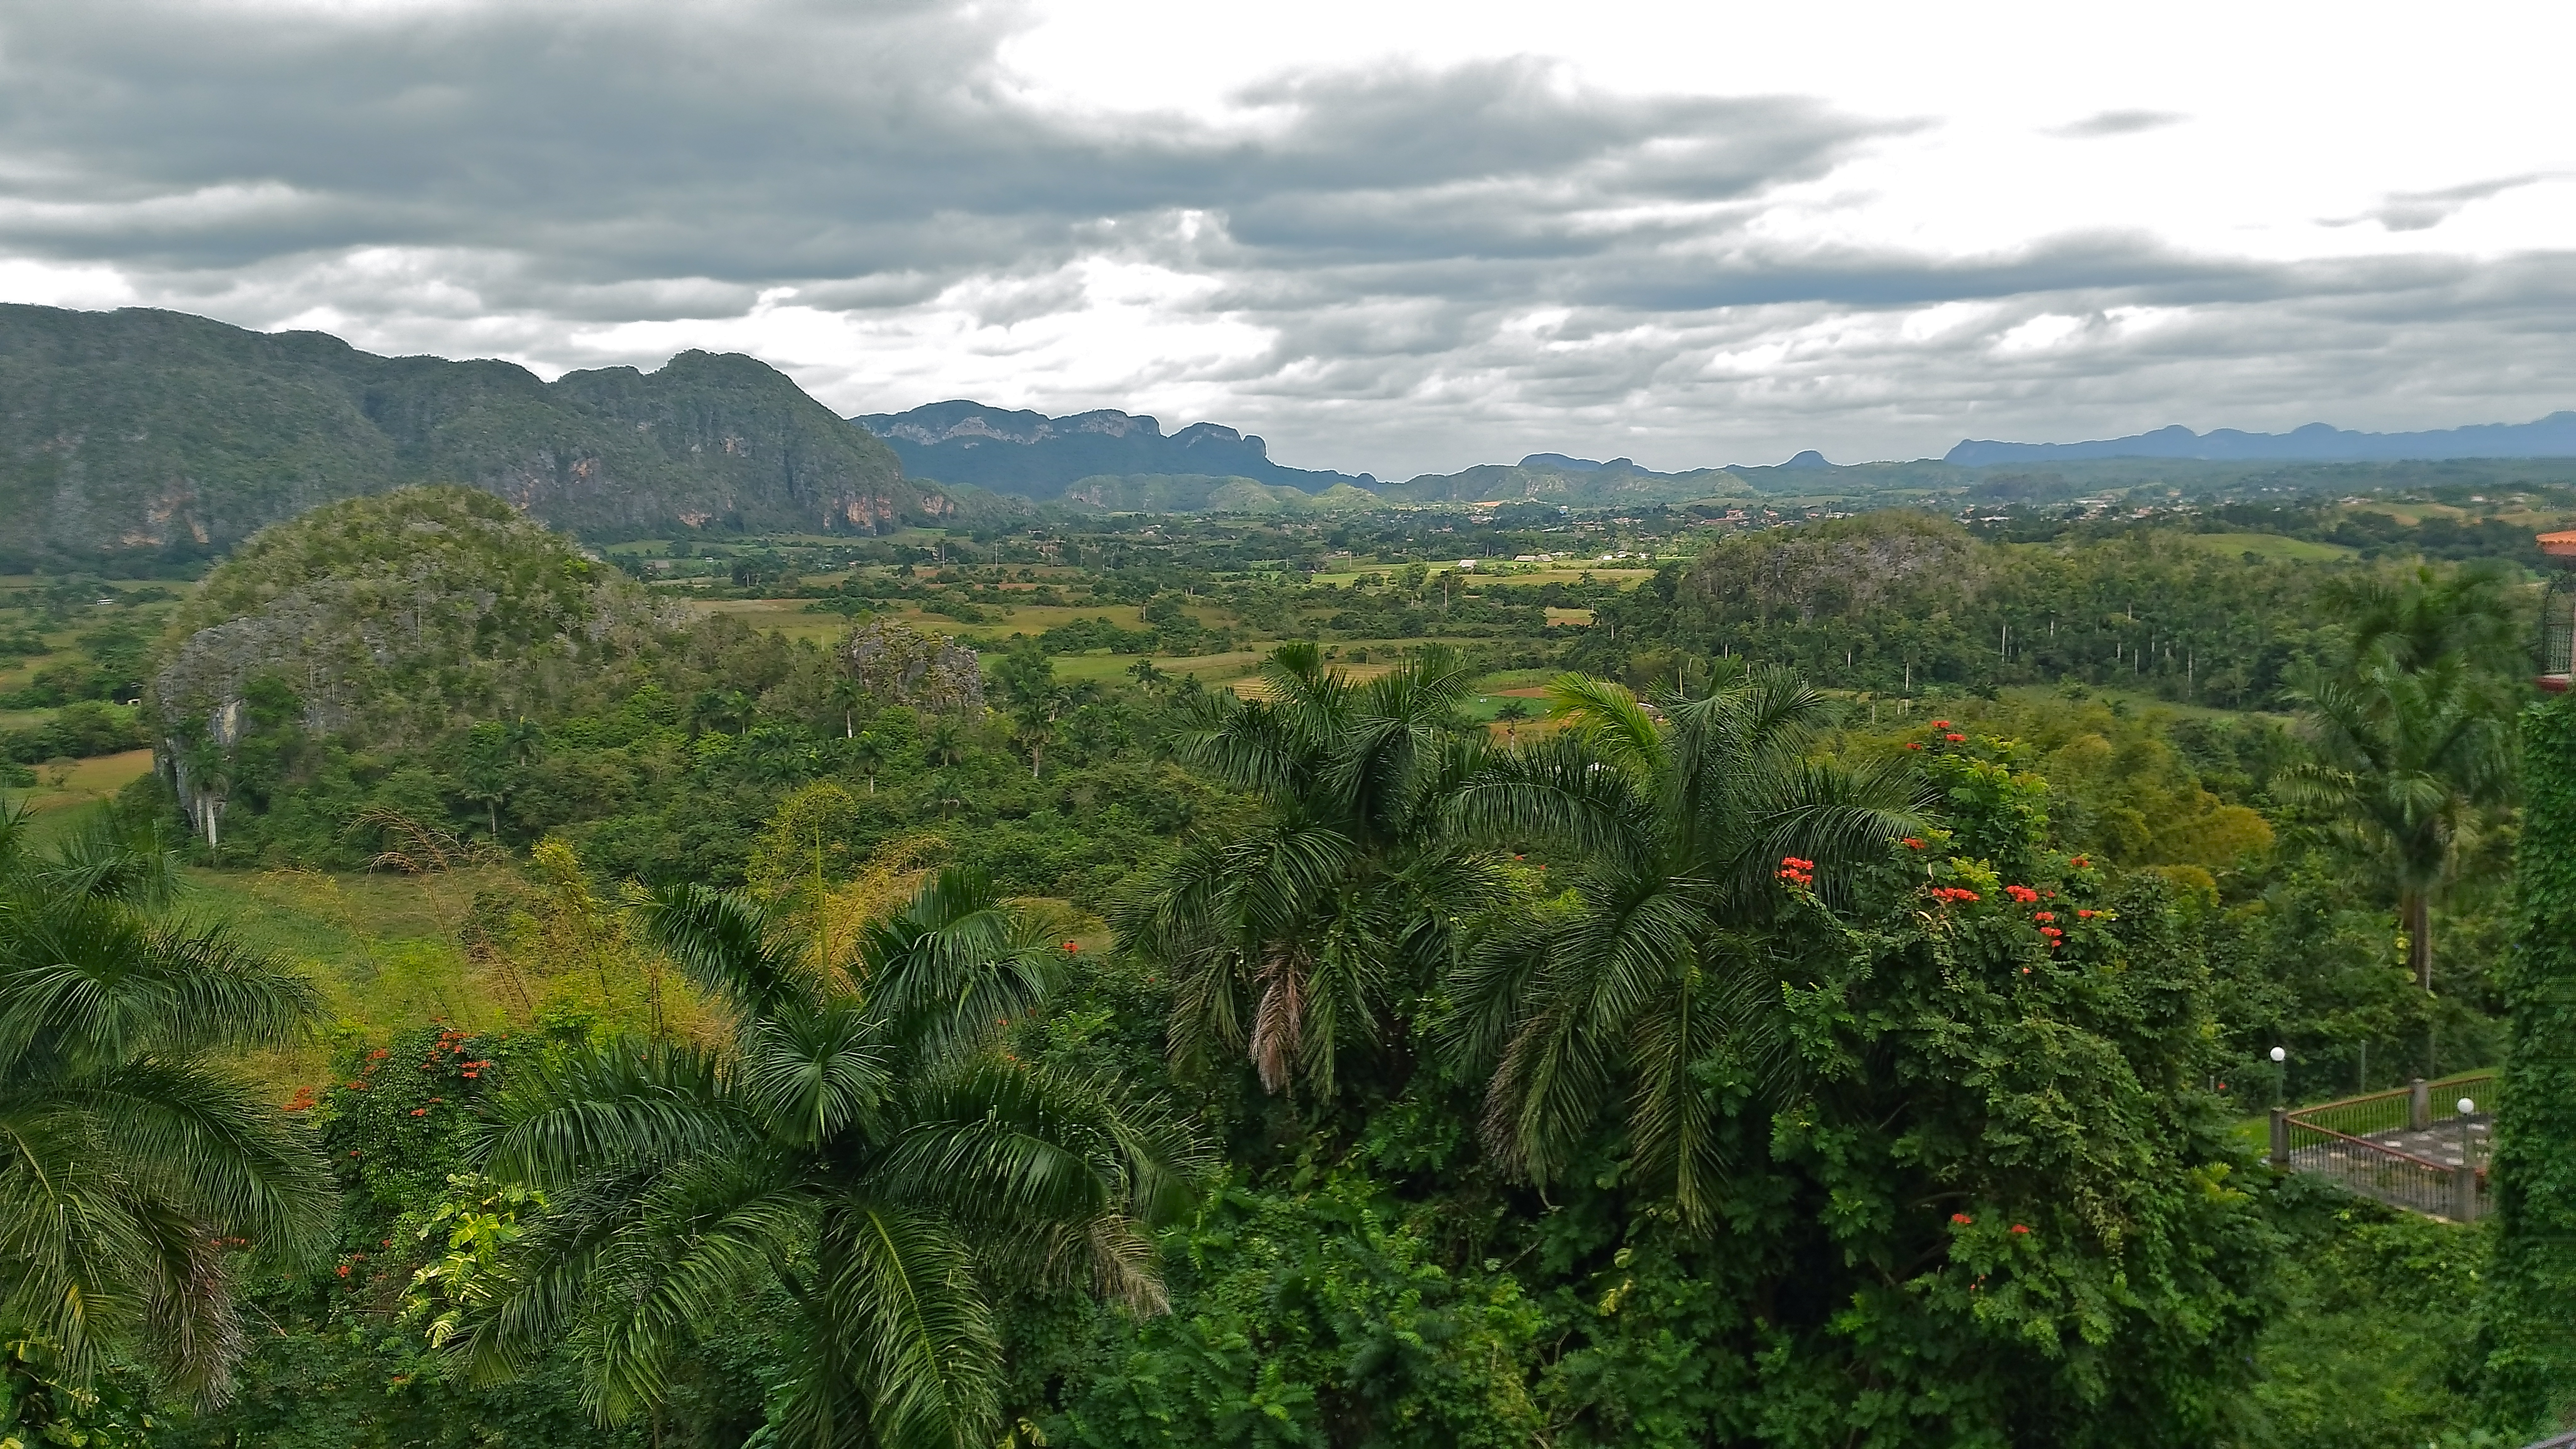 Vinales Valley day tours what to see in vinales cuba is vinales cuba safe for solo women